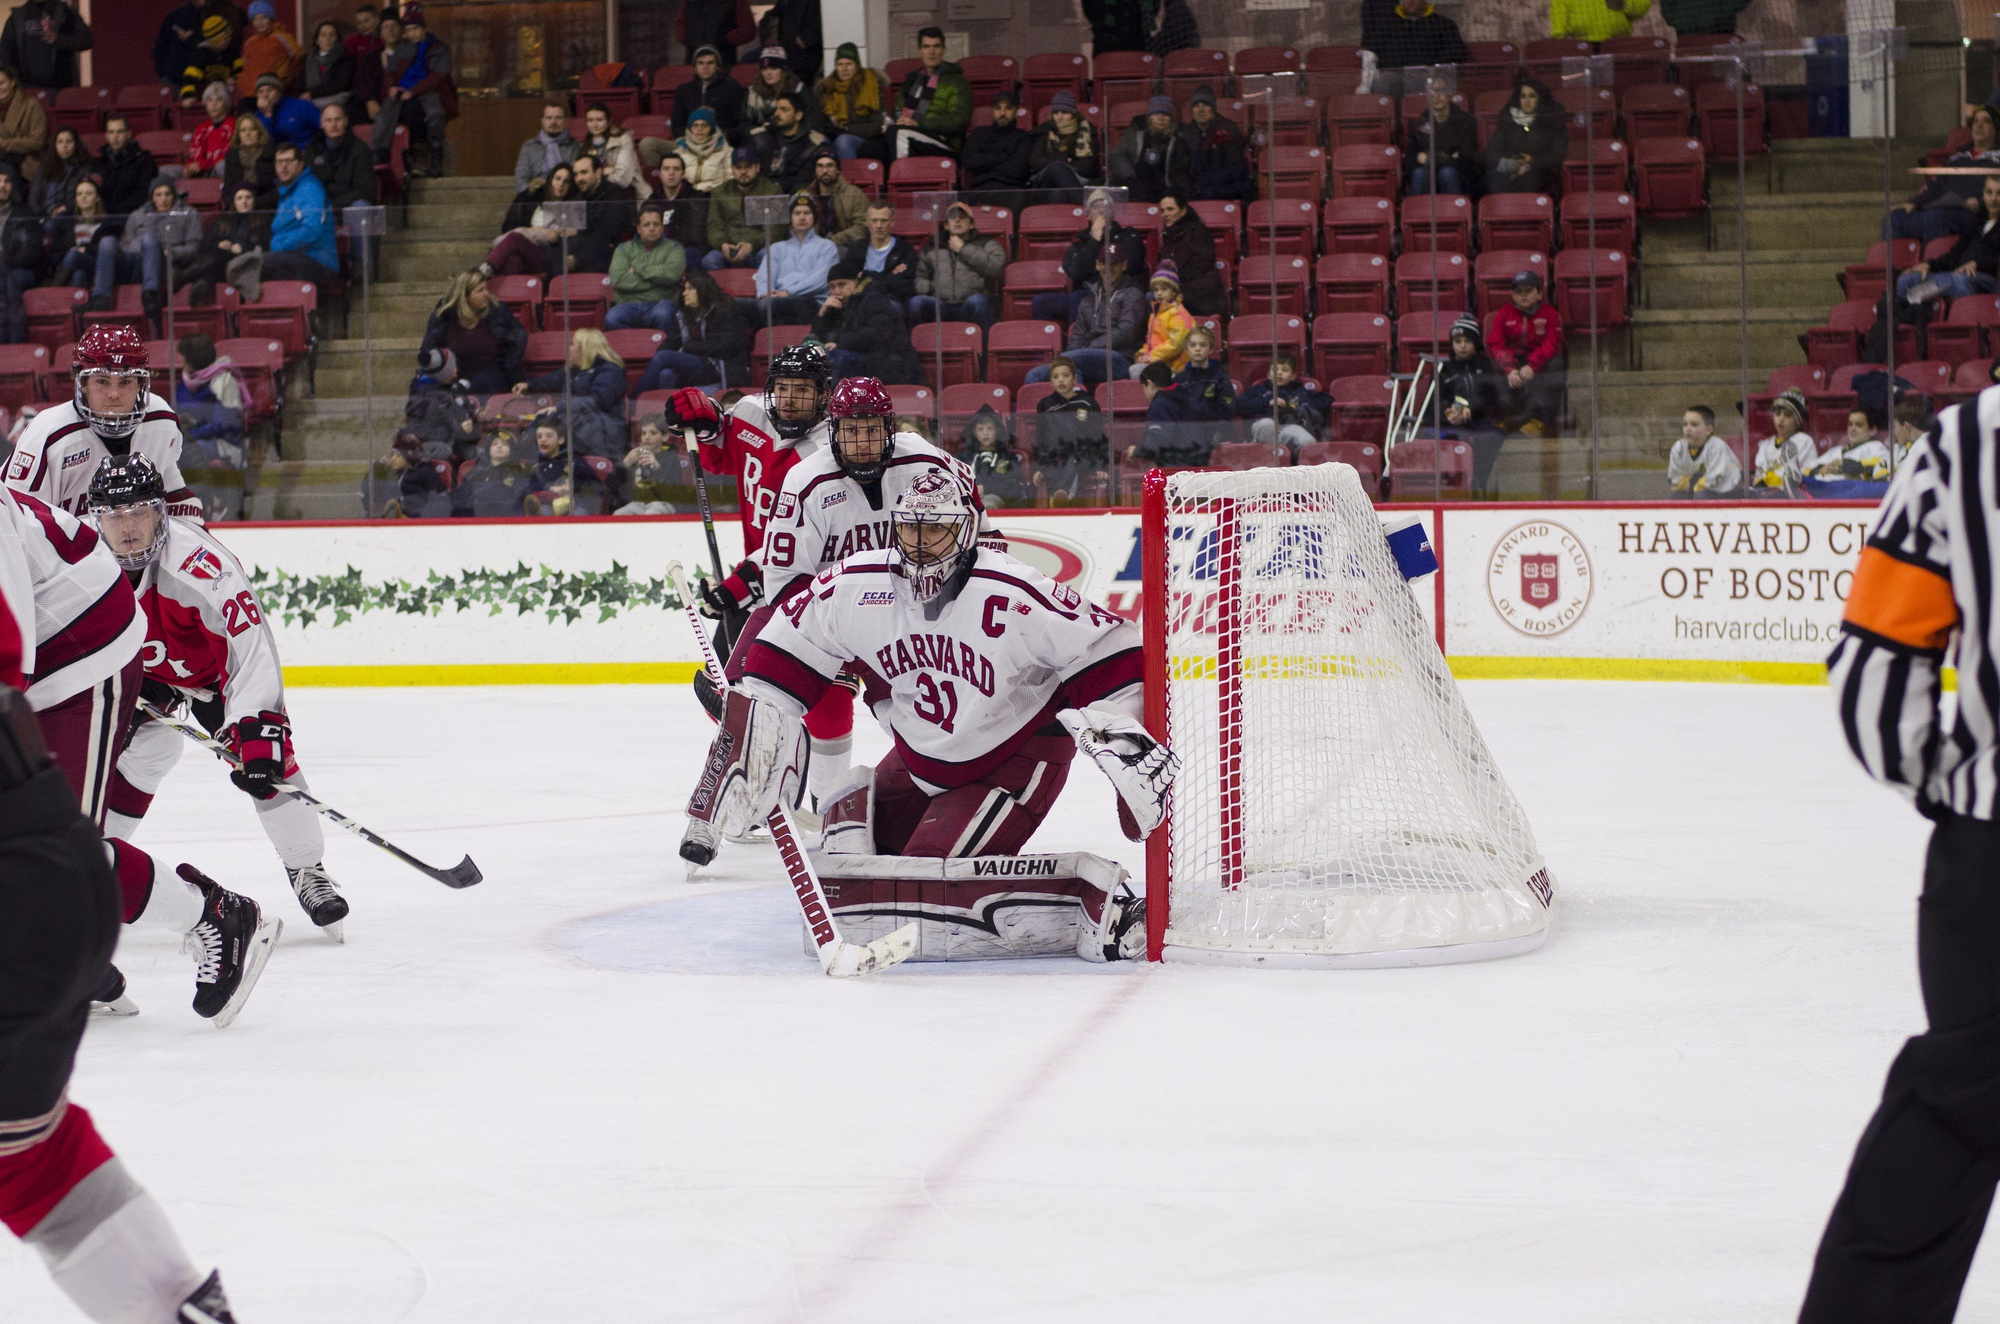 Tri-captain Merrick Madsen put forth a stingy night between the pipes on Friday, holding RPI goal-less and earning his 10th career clean sheet.